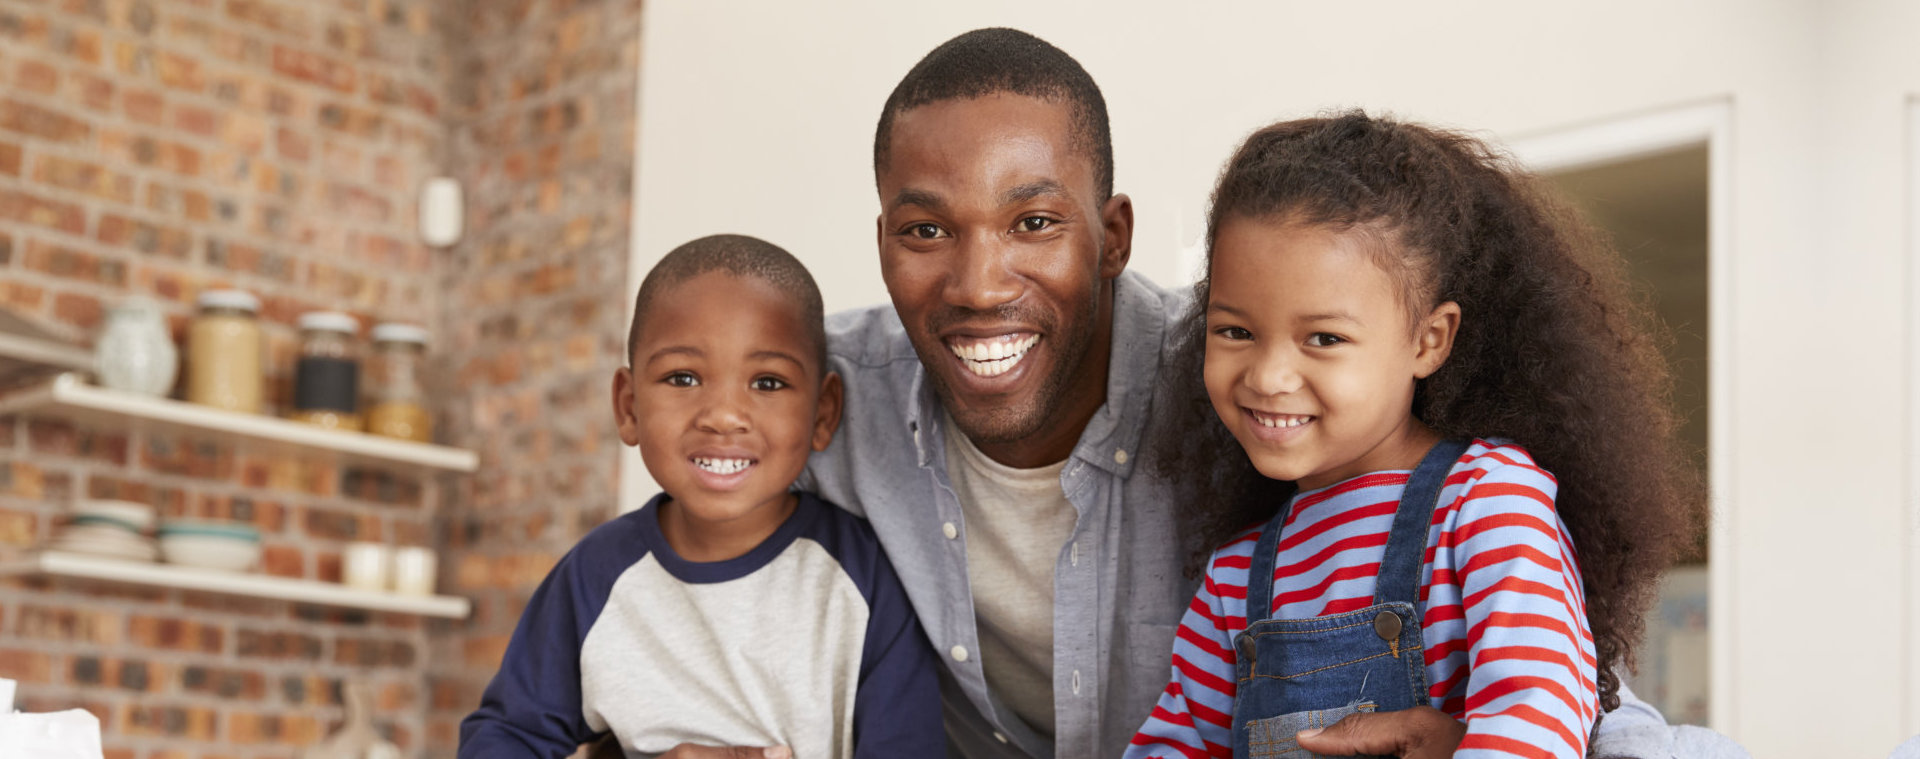 father together with kids smiling